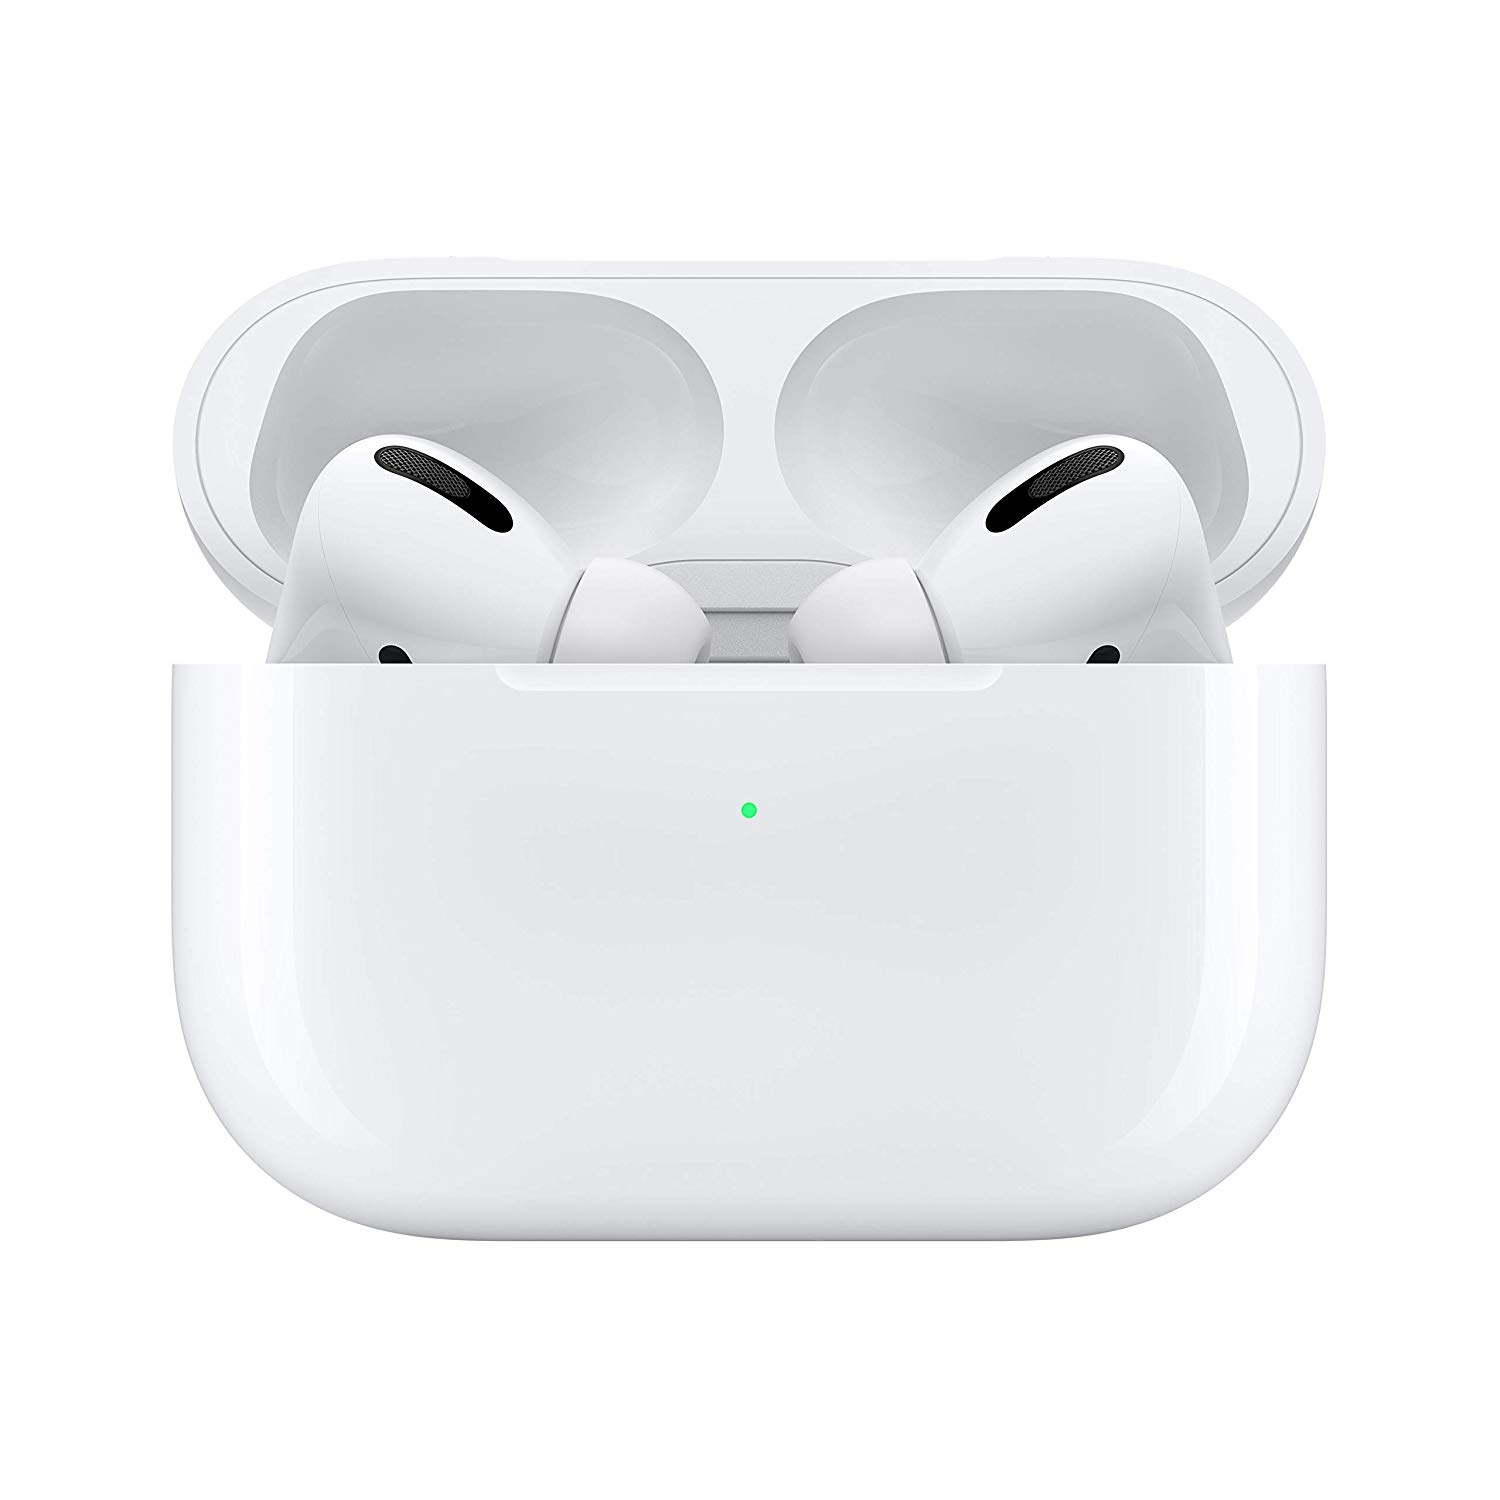 AirPods Pro From Apple